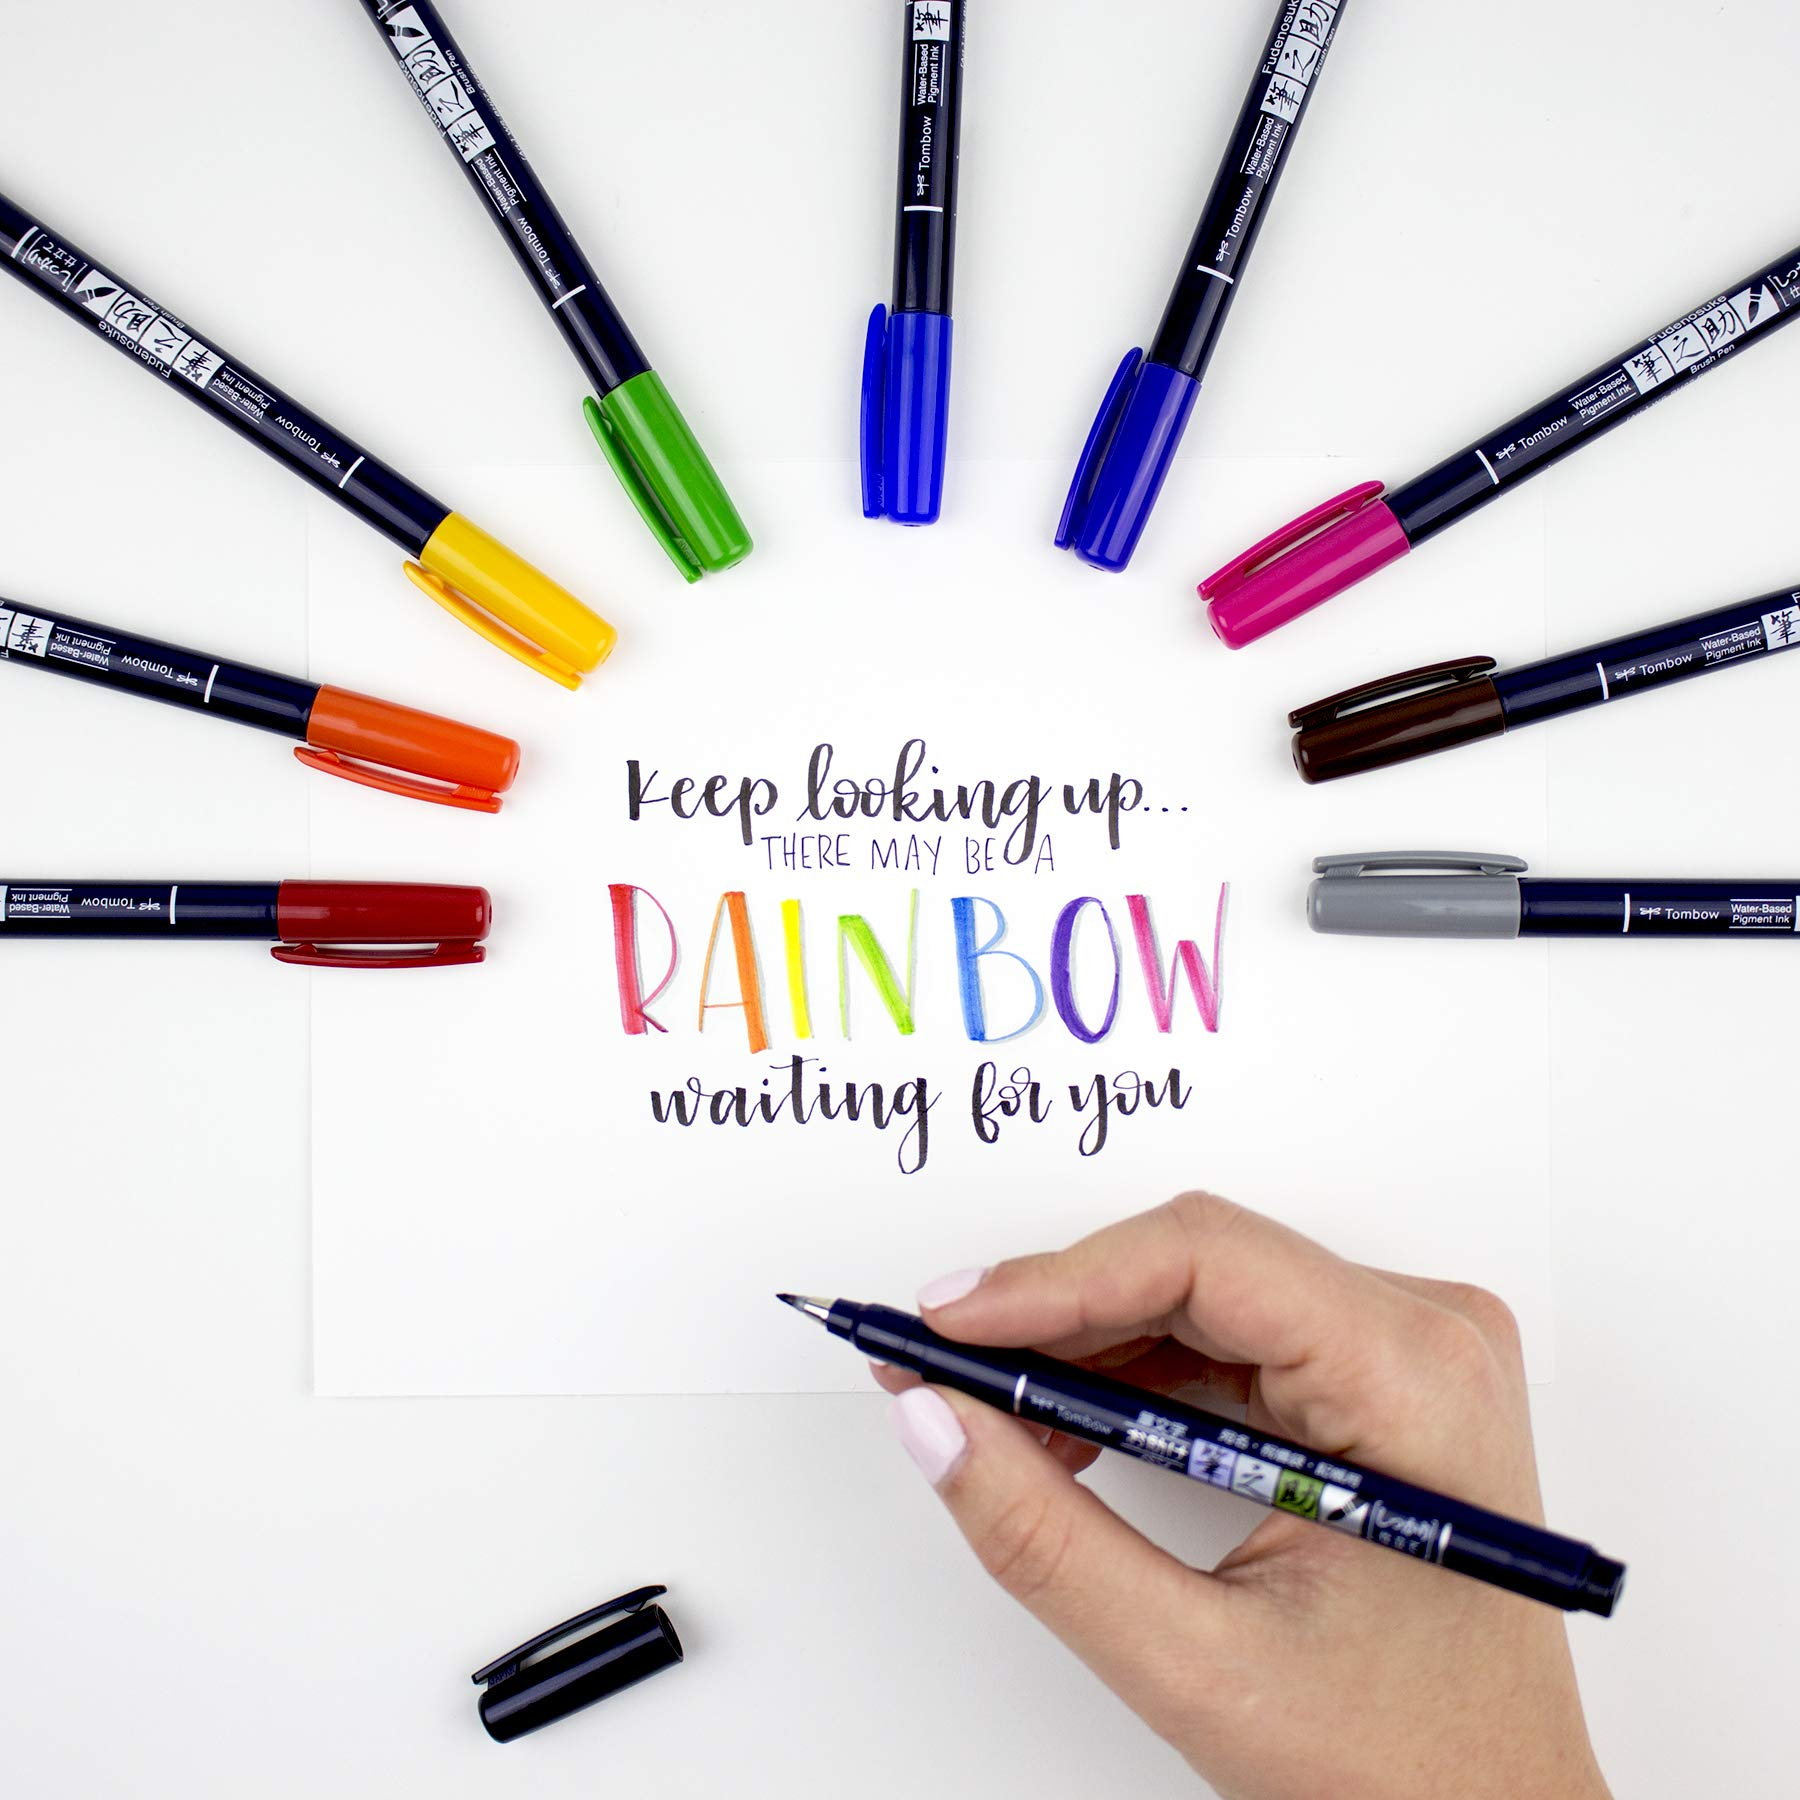 Tombow 56429 Fudenosuke Color Brush Pen, 10-Pack. Hard Tip Fudenosuke Brush Pens in Assorted Colors for Calligraphy and Art Drawings by Tombow (Image #7)